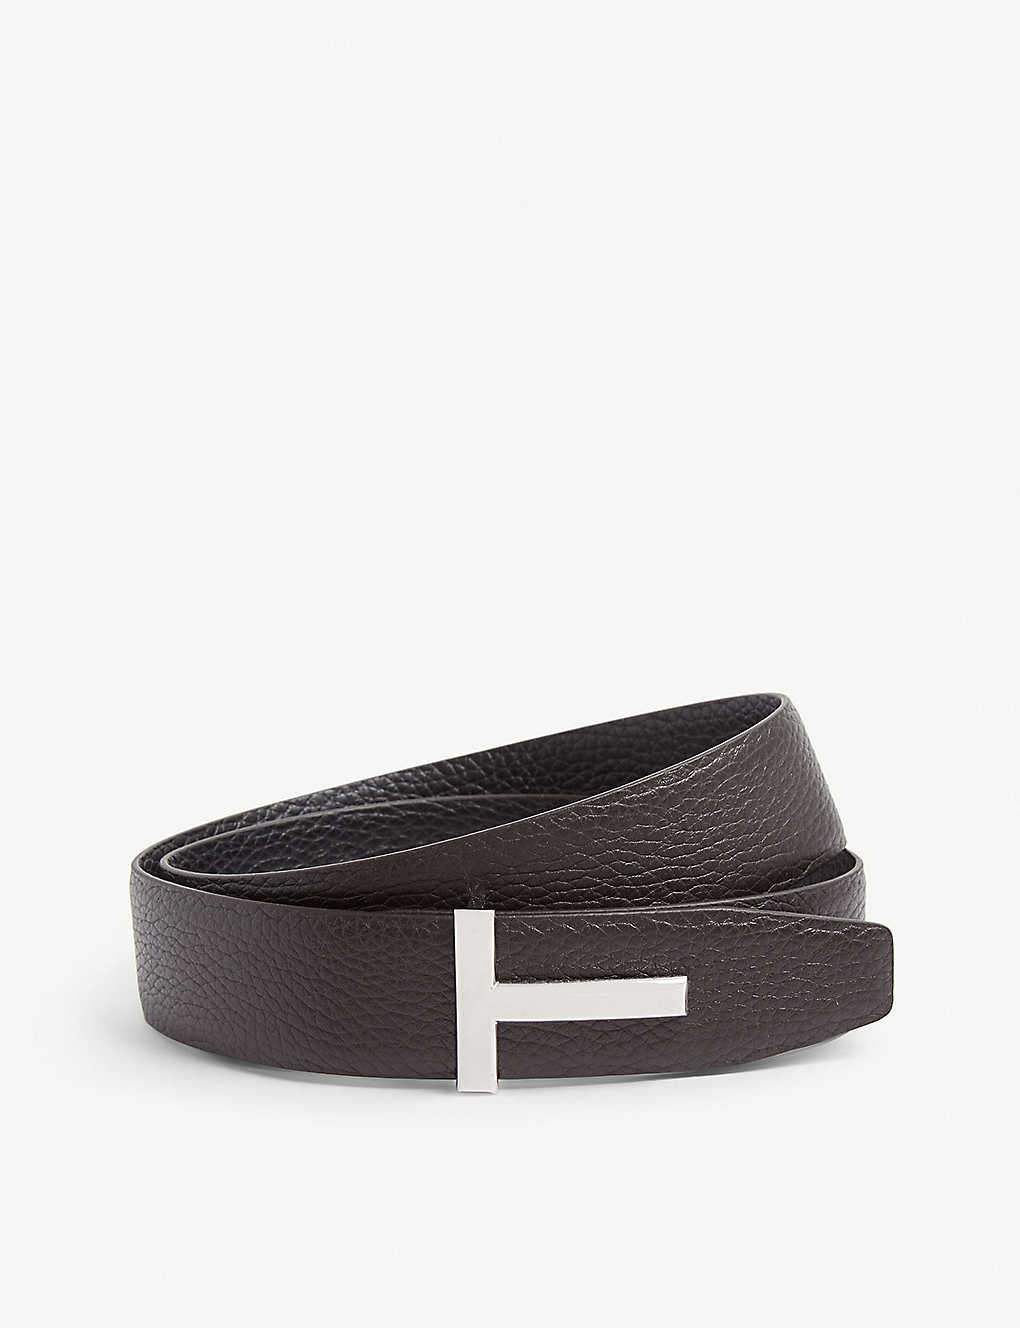 2aa8dbff997 TOM FORD - Reversible leather belt